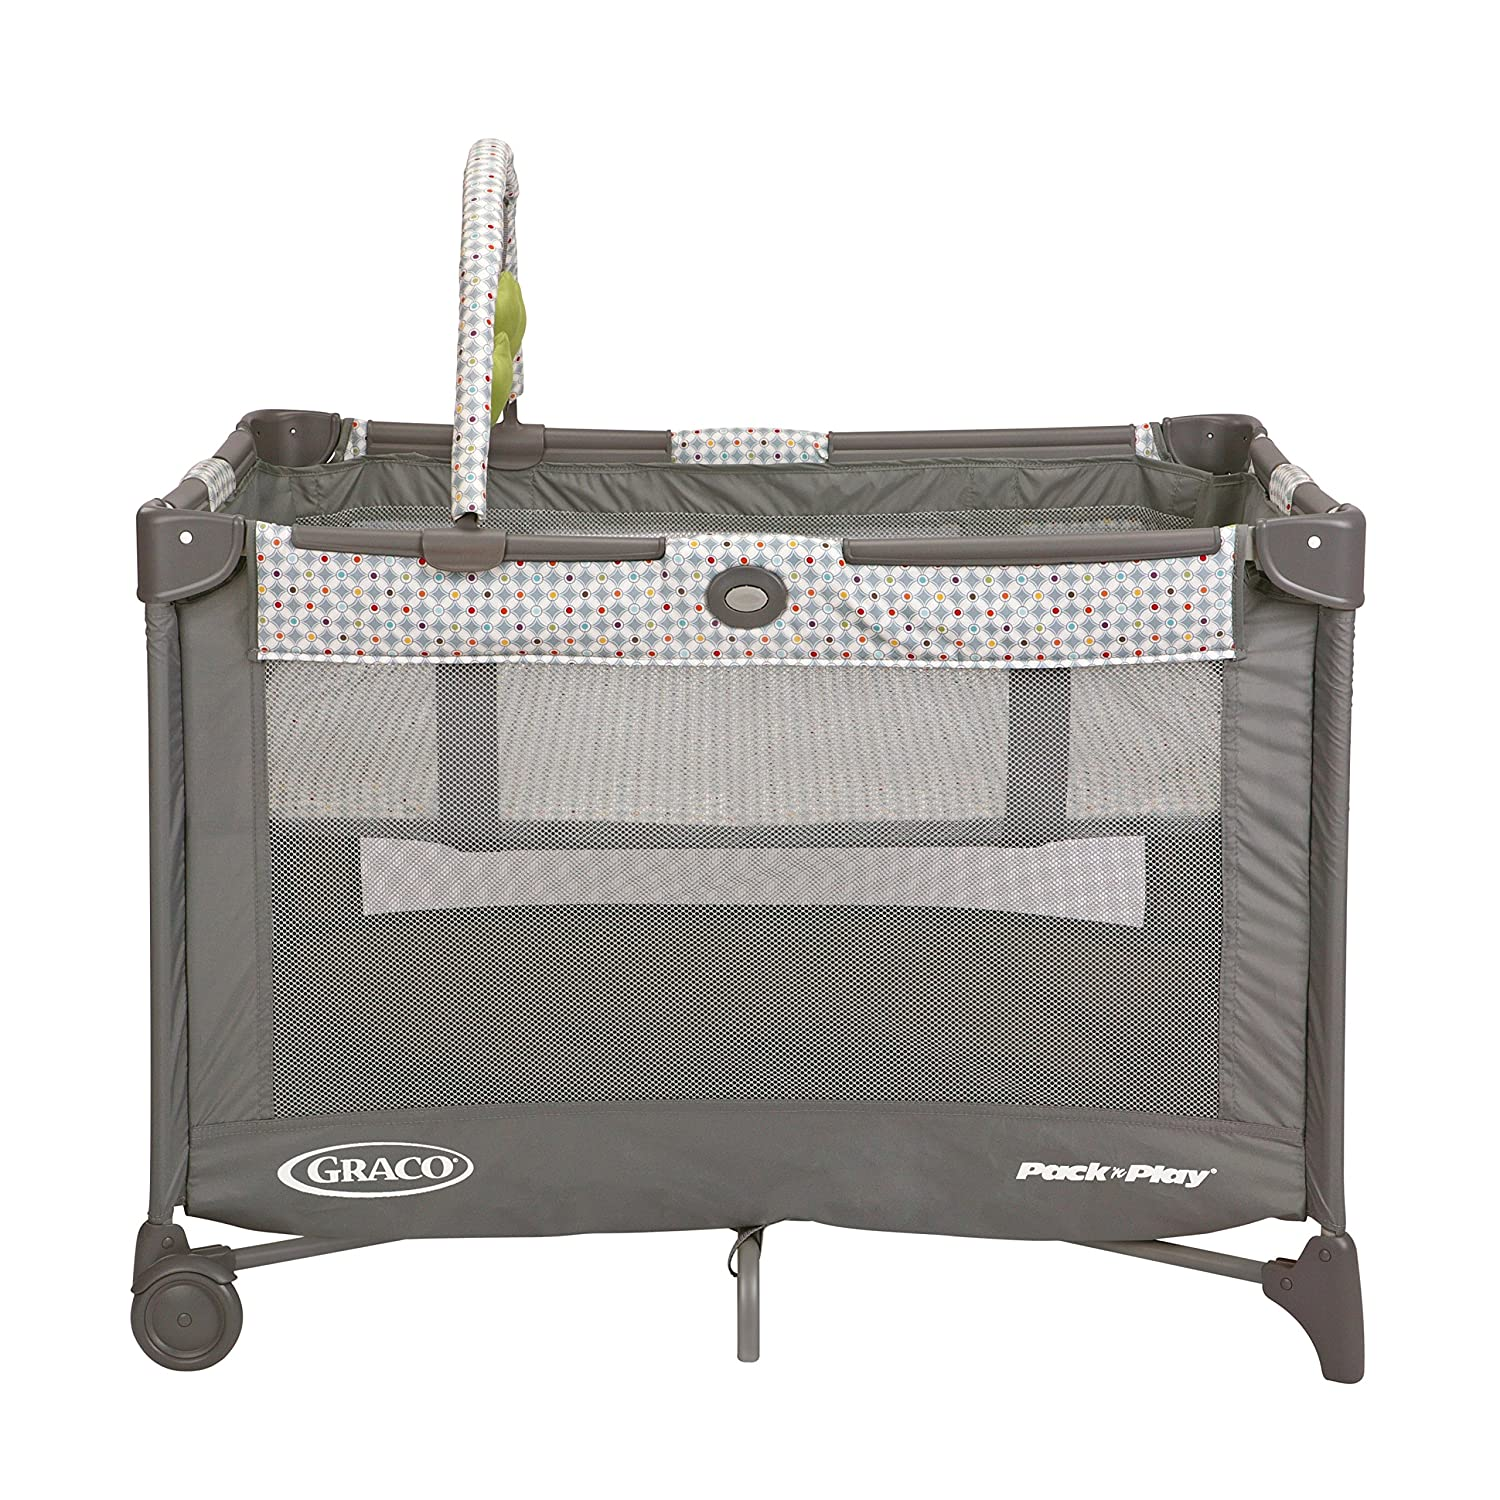 Graco Pack N Play Playard Bassinet with Automatic Folding Feet